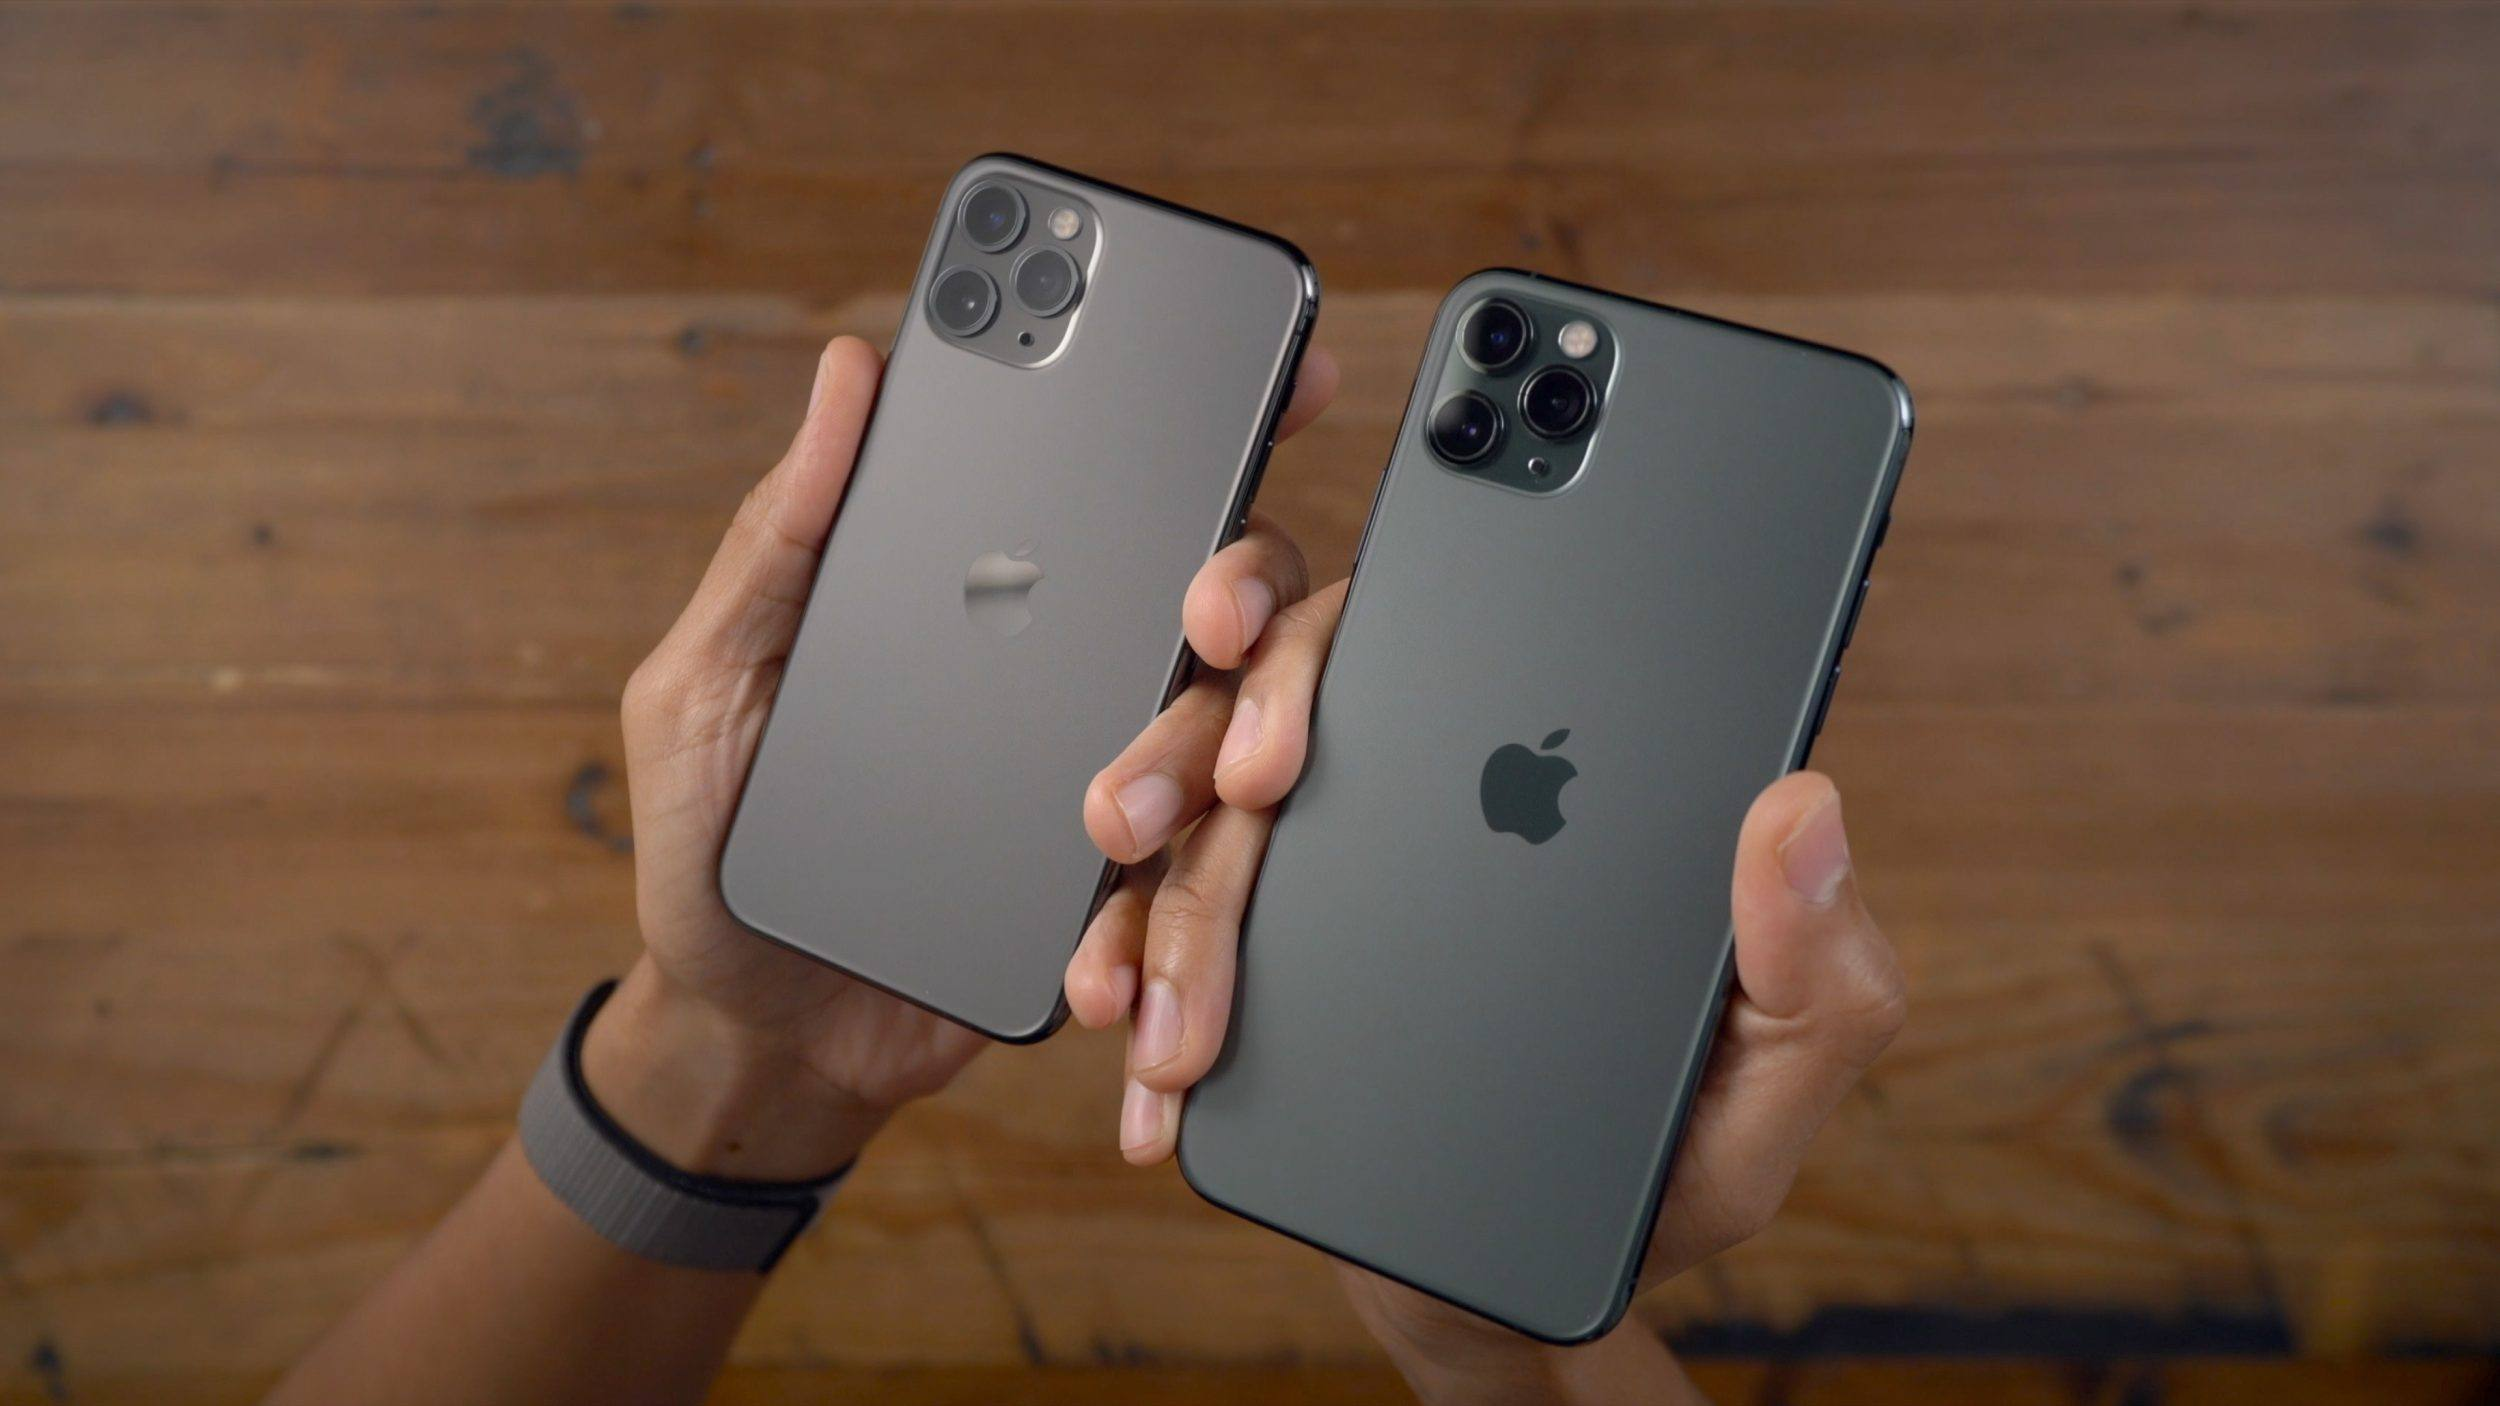 iPhone-11-Pro-Which-iPhone-Should-I-Buy